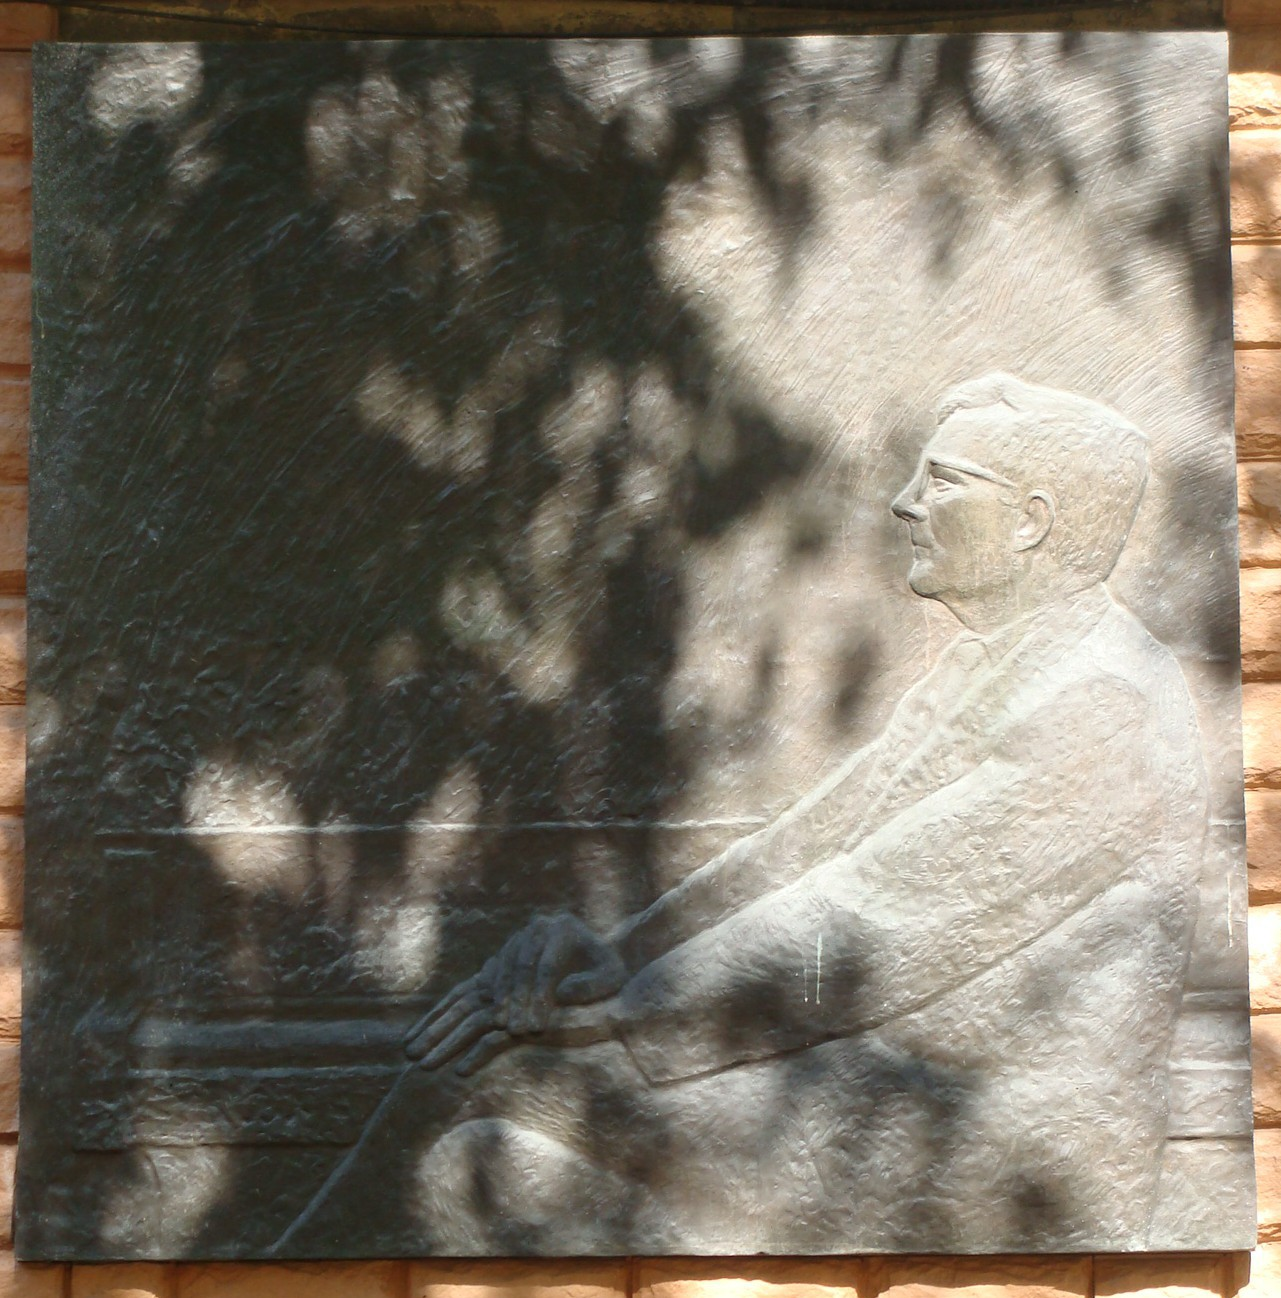 Shostakovich memorial plaque